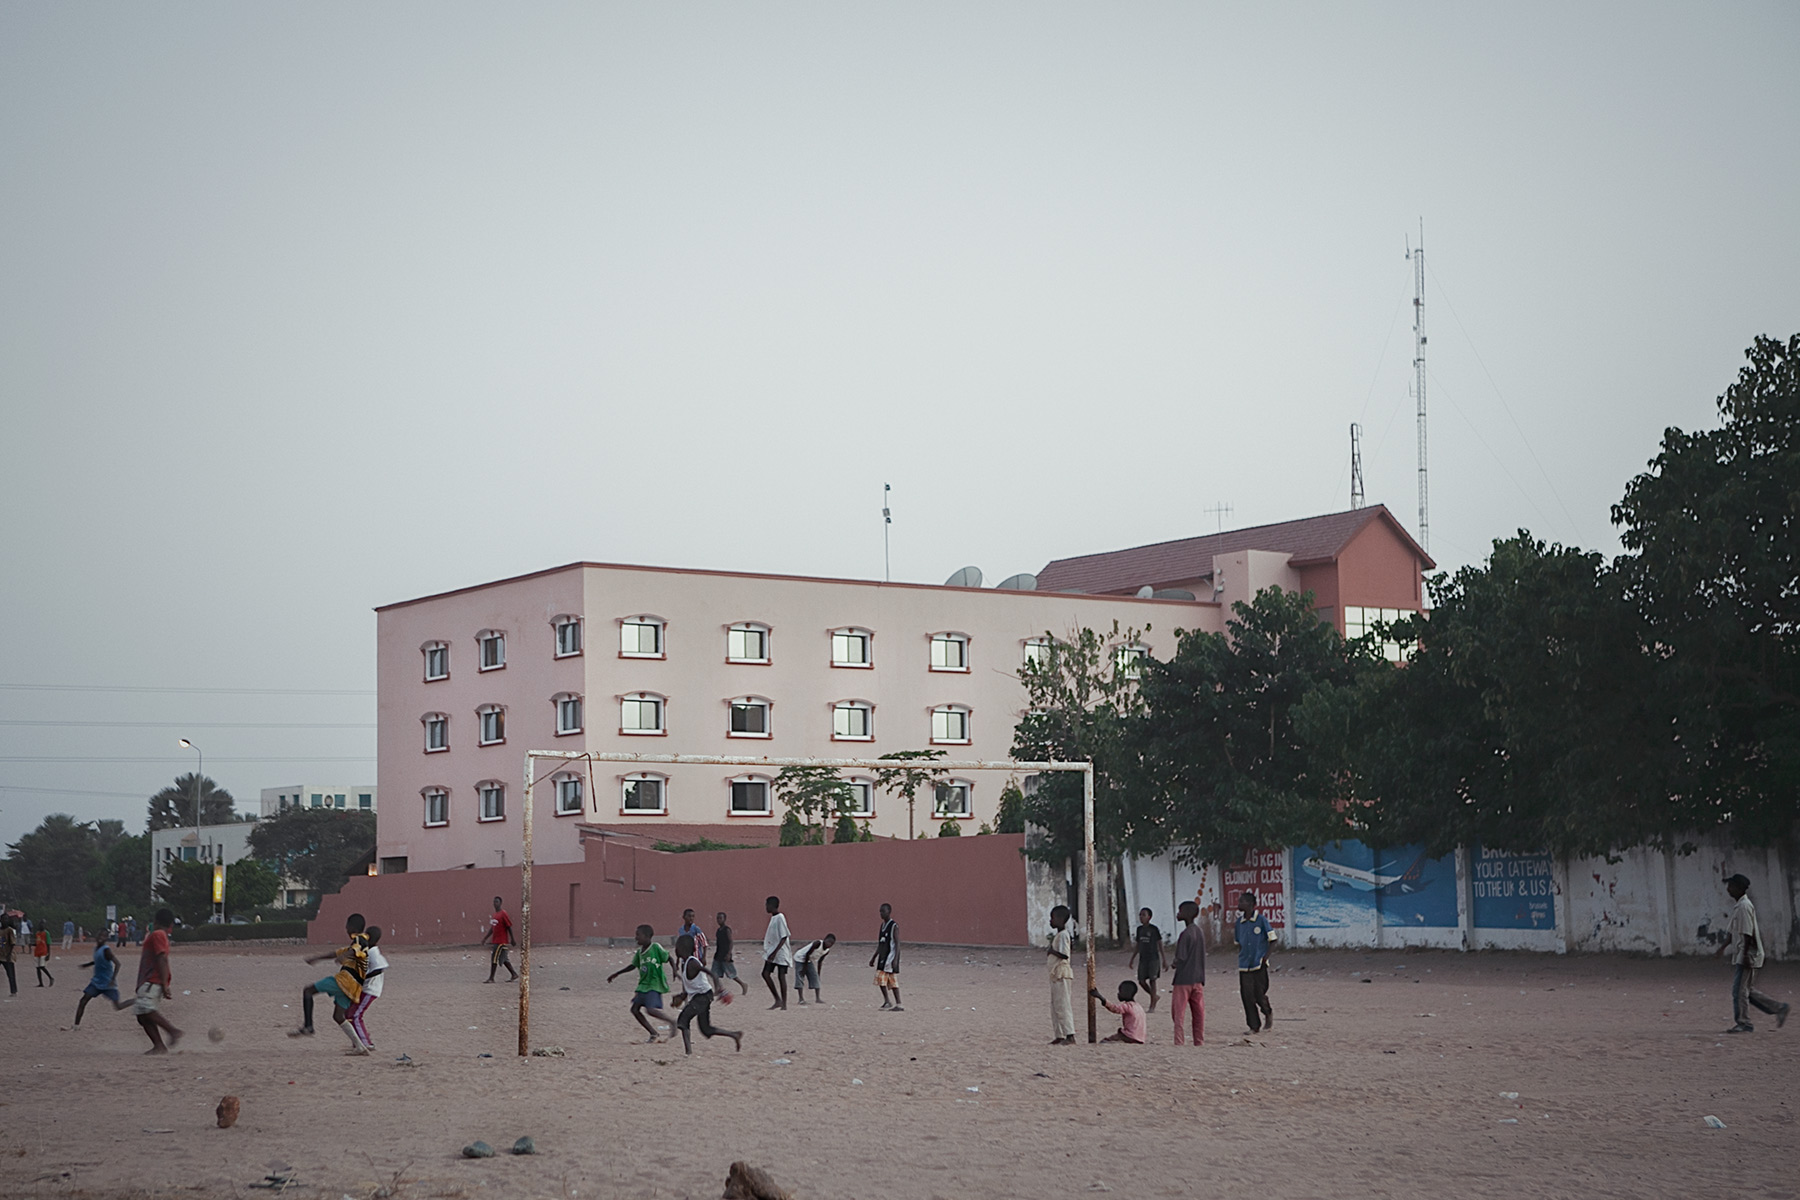 Good Boy Wolf Photographer, Gambia, west Africa, young footballers playing on dusty floor